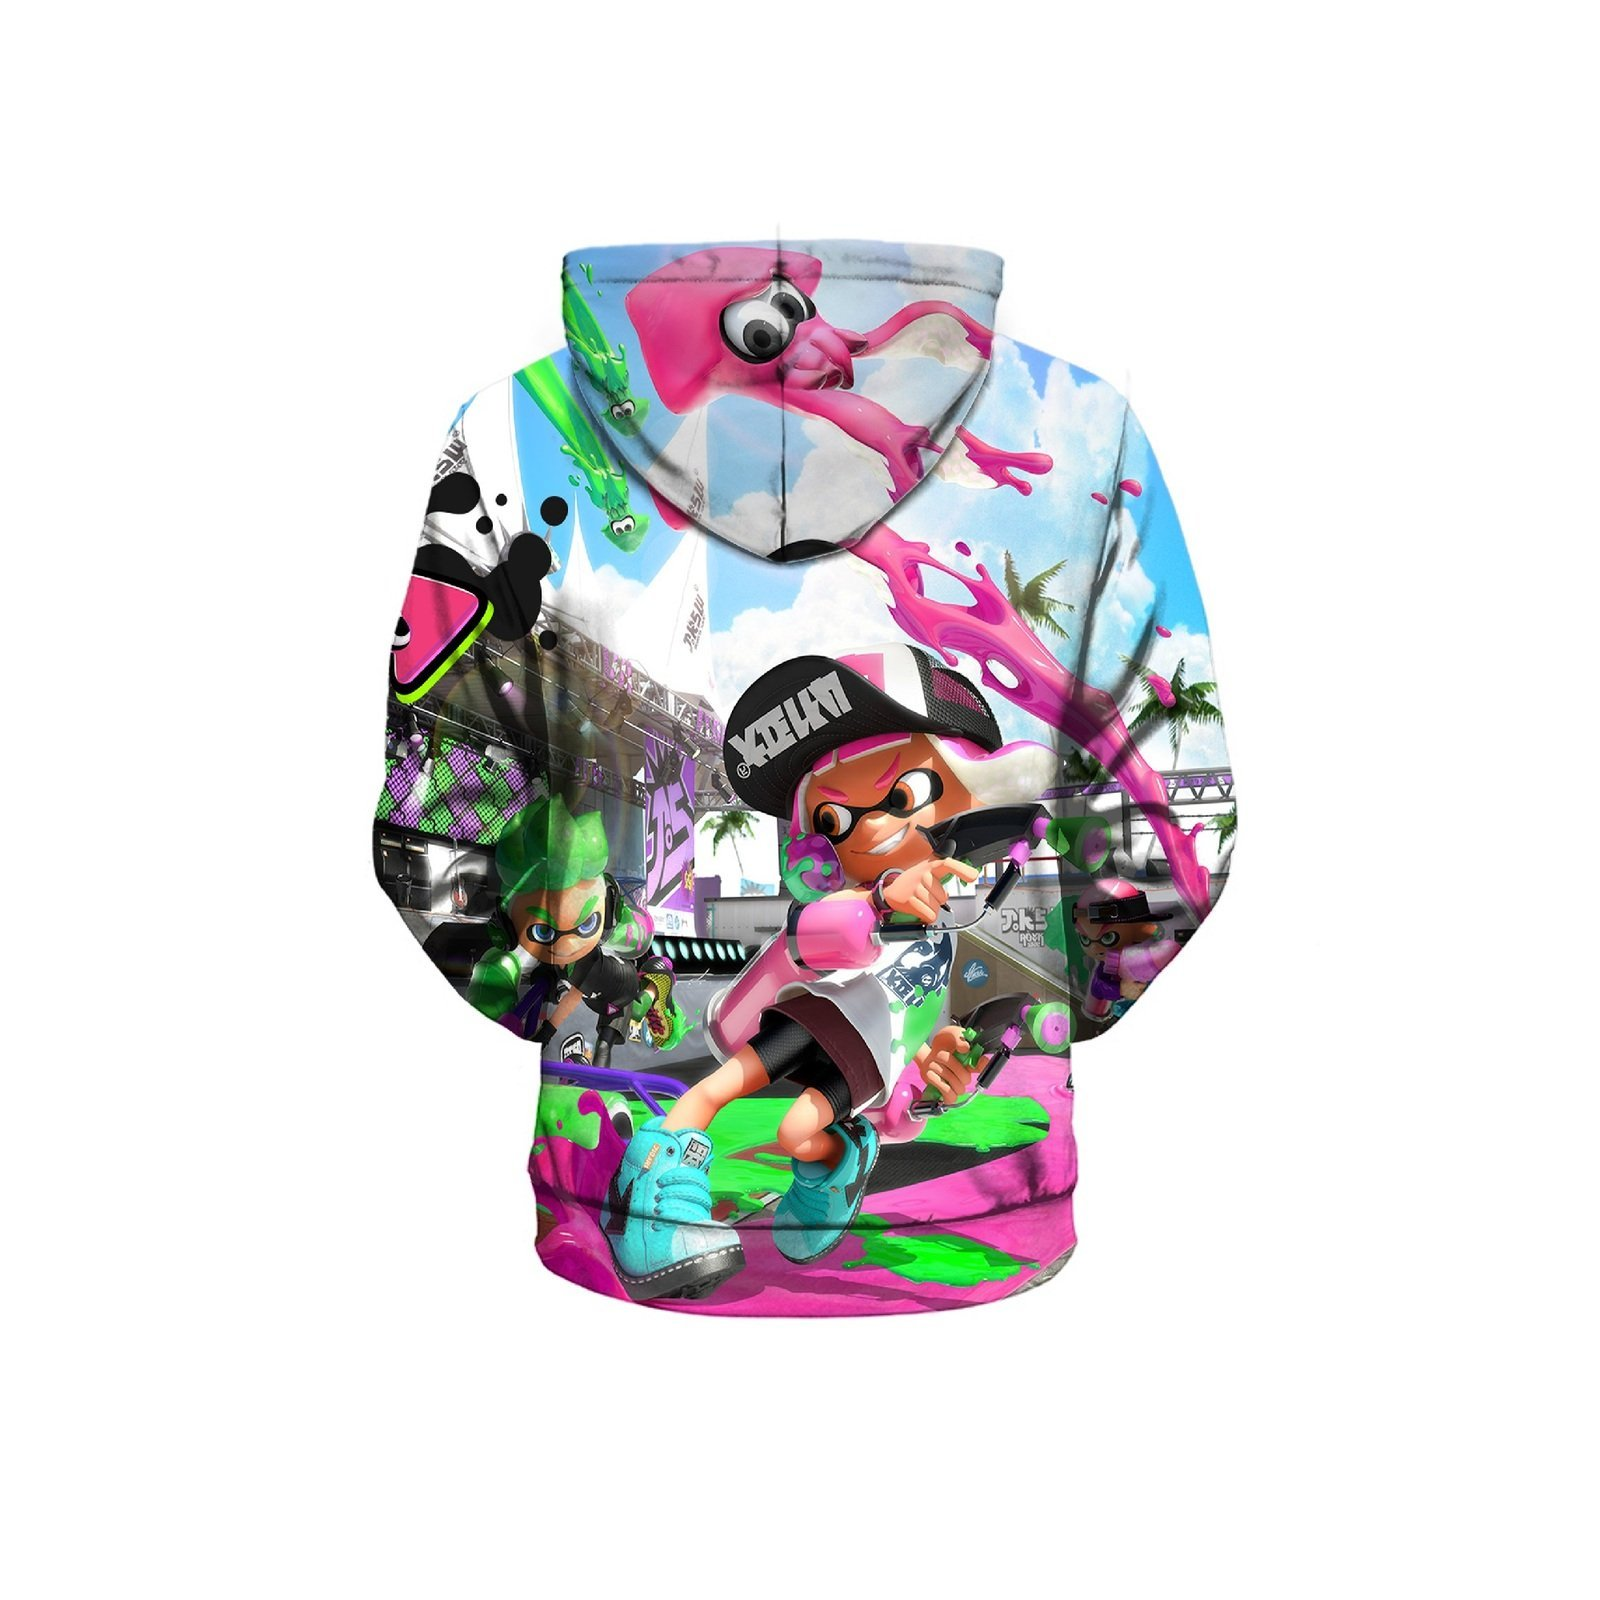 2019 Kids Splatoon 2 Hoodie Sep Series Pullover Sweatshirt